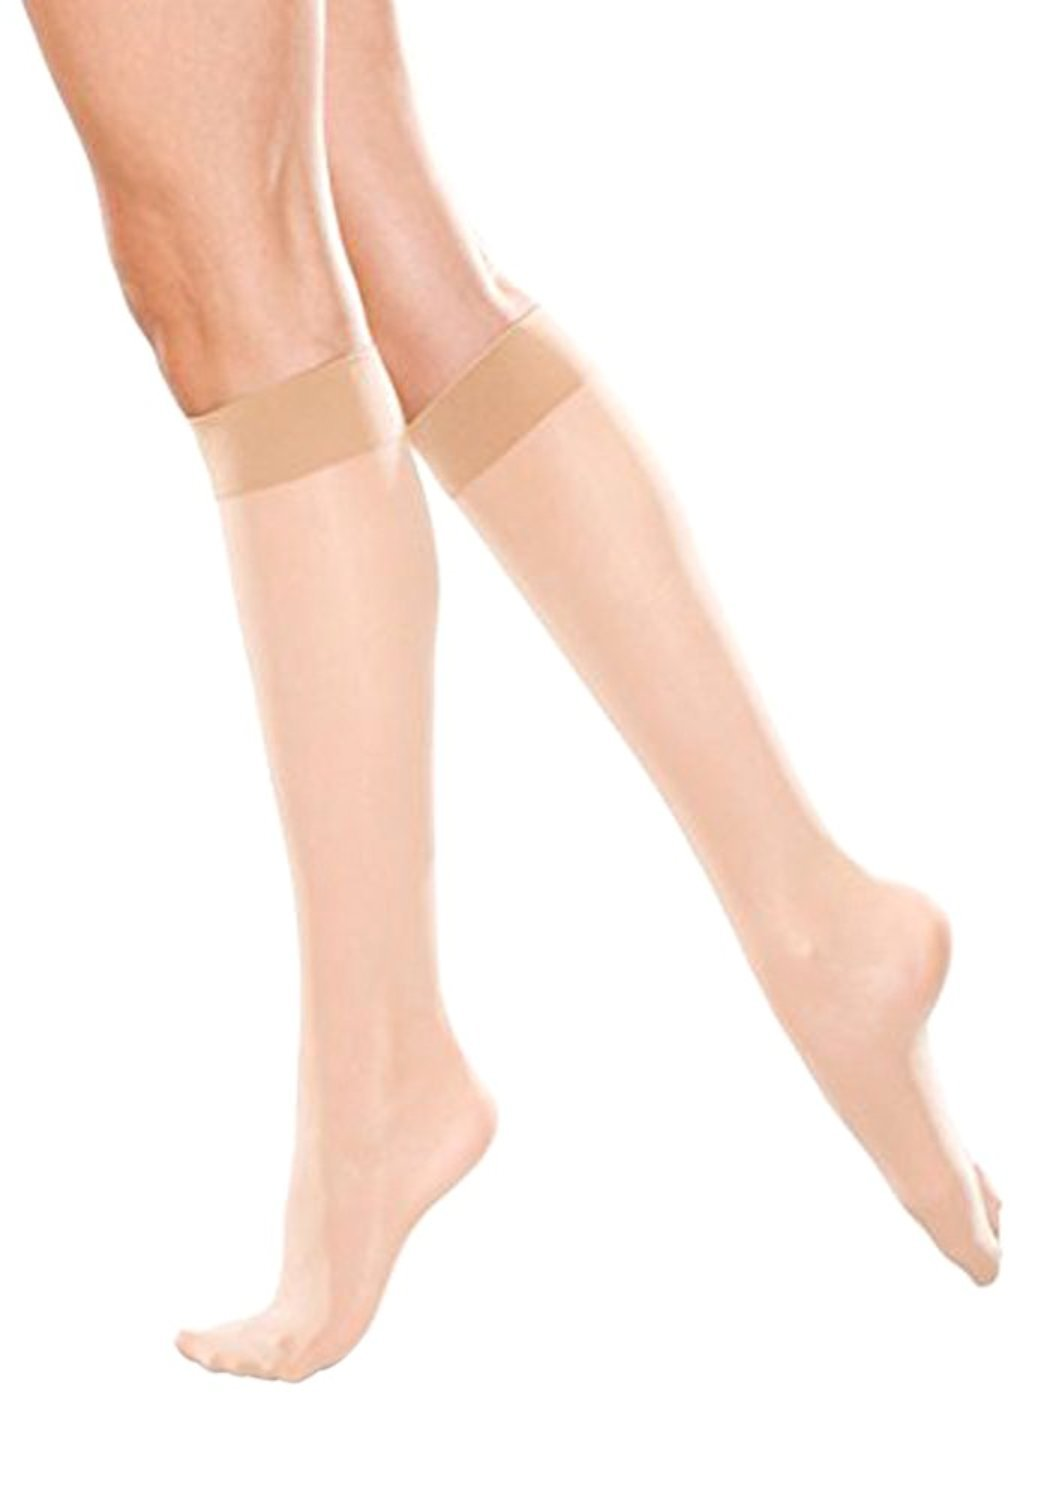 Therafirm Women's Sheer Knee Highs with Mild (15-20mmHg) Compression (Natural, Medium)